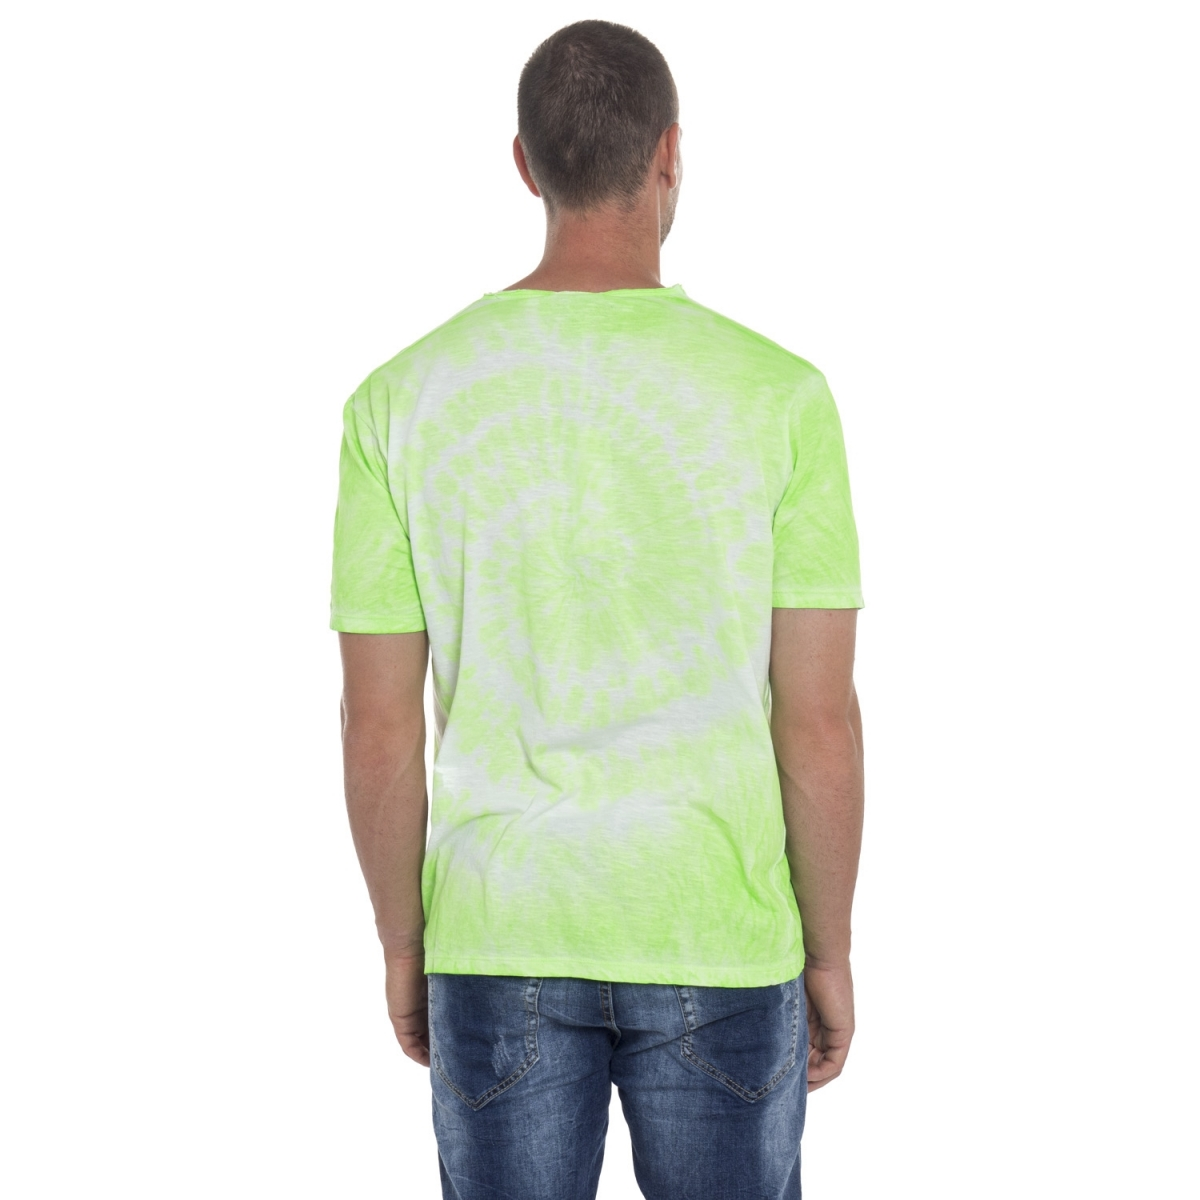 clothing T-shirt men T-Shirt GLPL1398 GIANNI LUPO Cafedelmar Shop